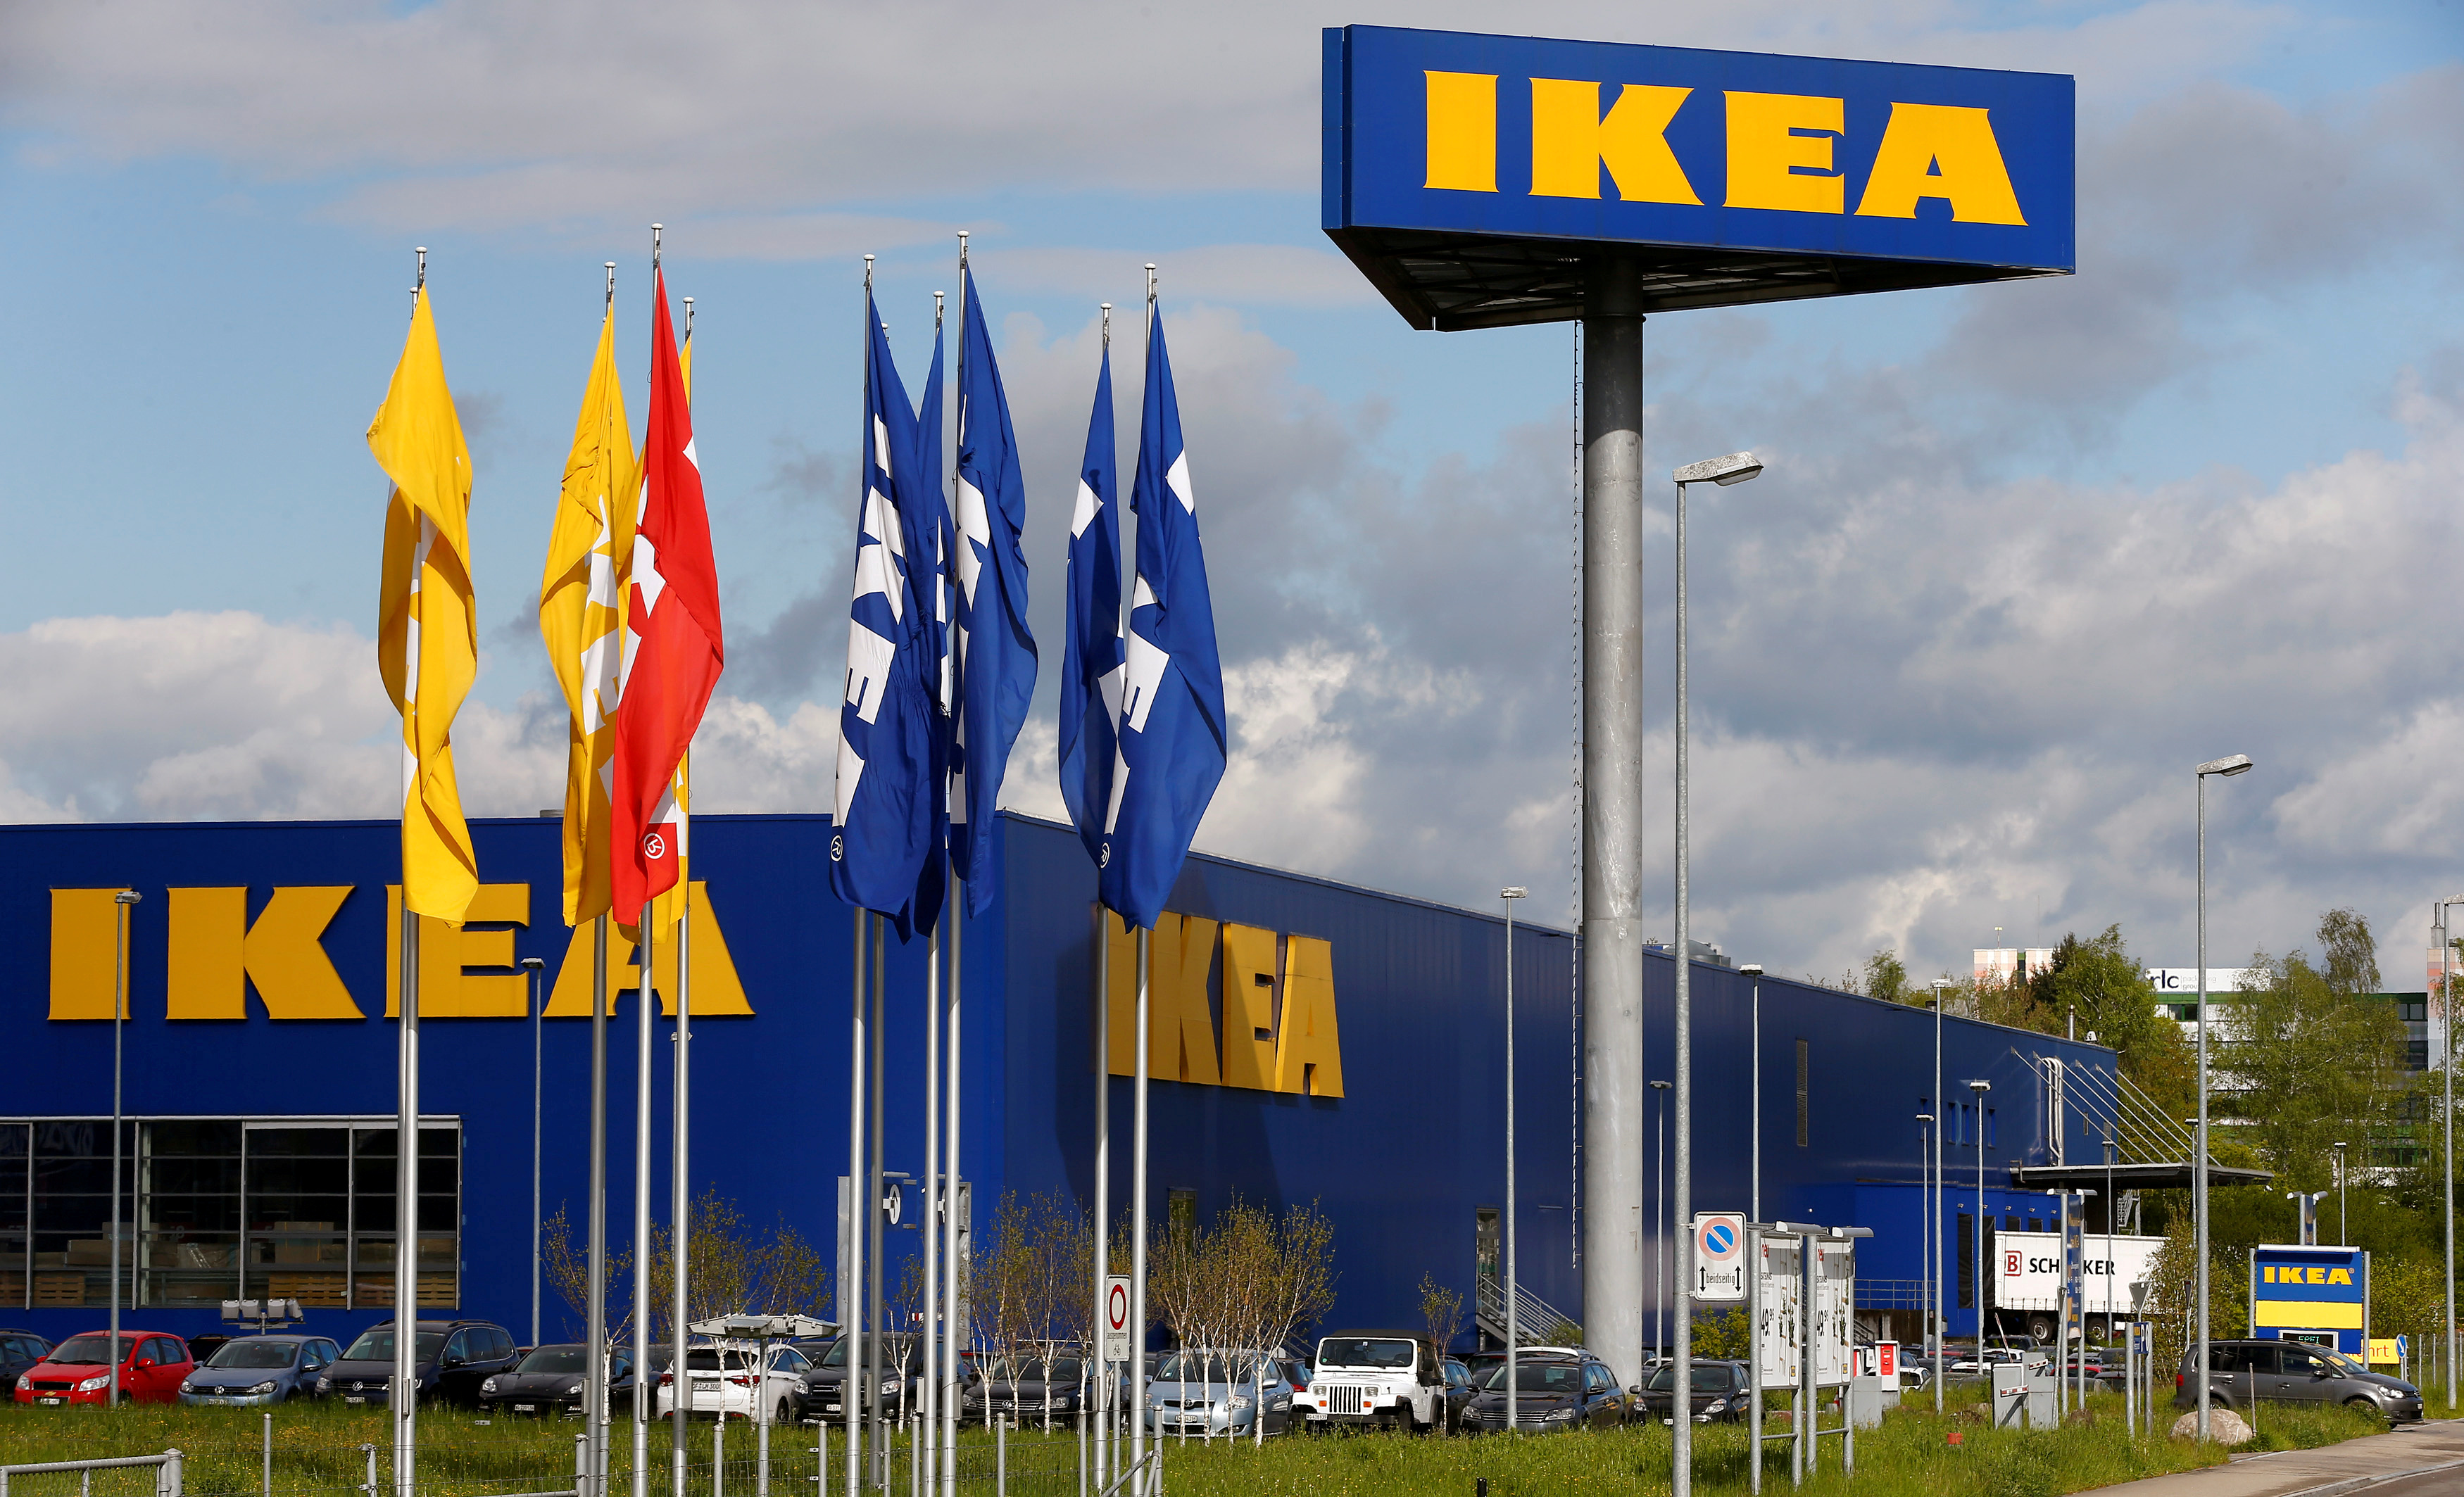 The company's logo is seen outside of an IKEA Group store in Spreitenbach, Switzerland on April 27, 2016.